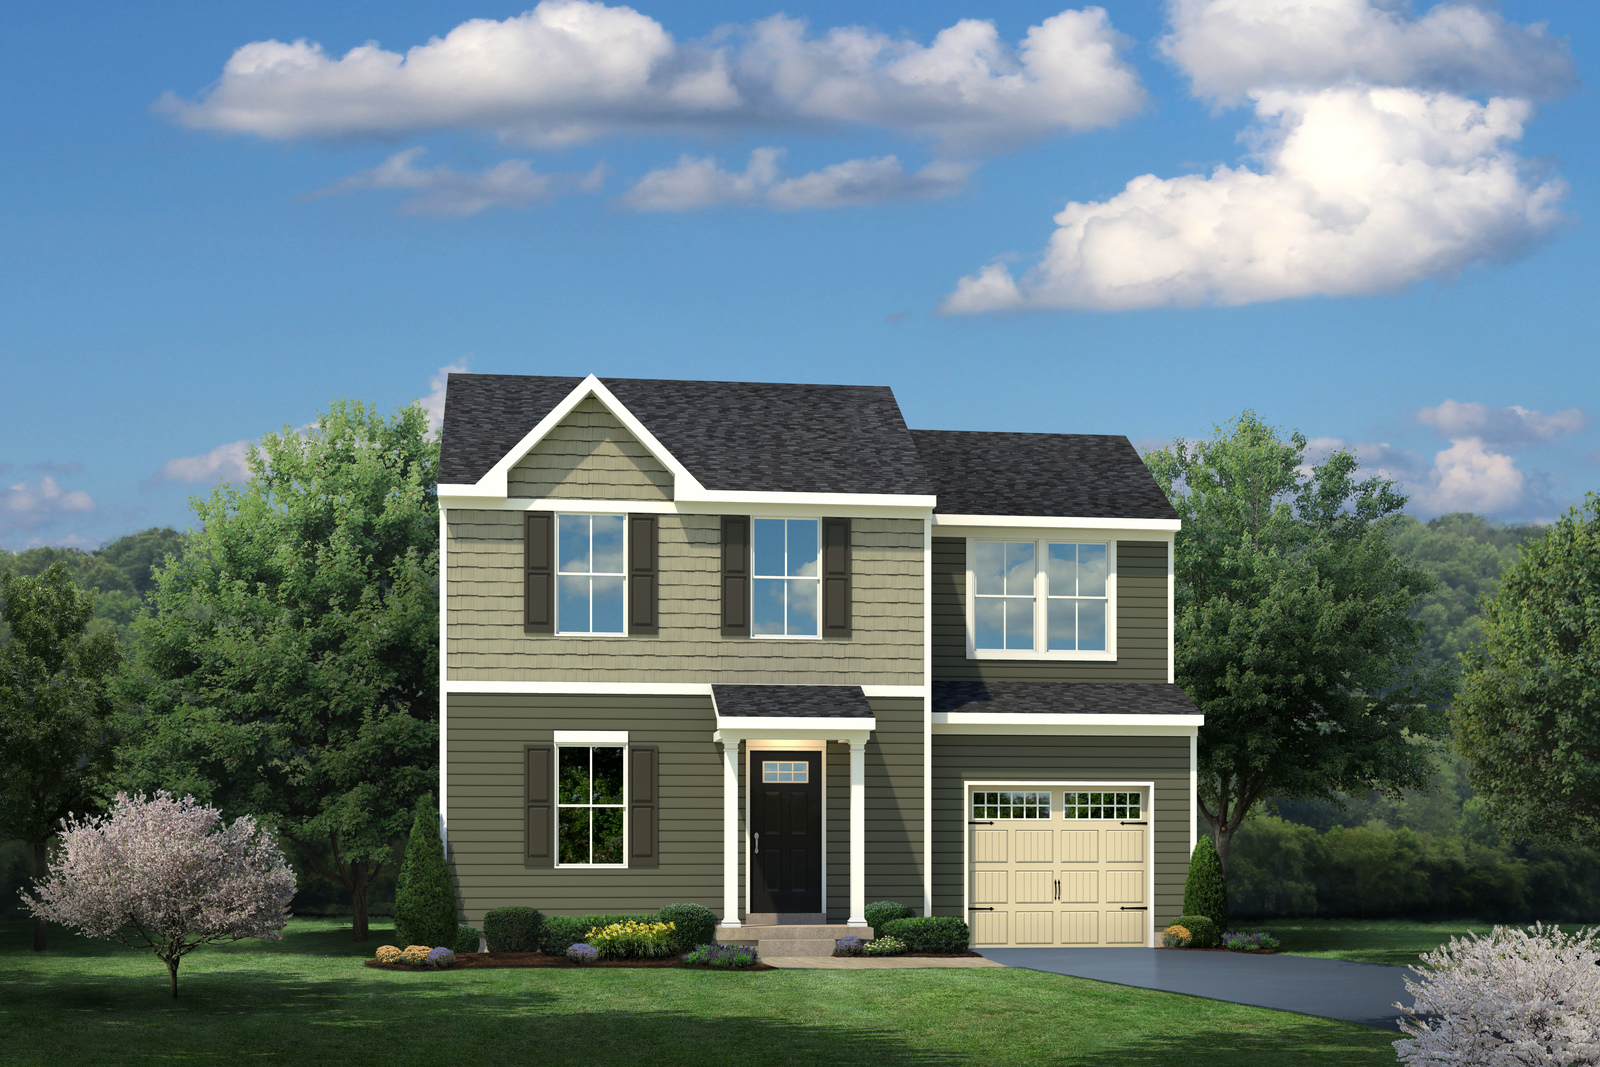 New Construction Homes For Sale In Greenville Sc